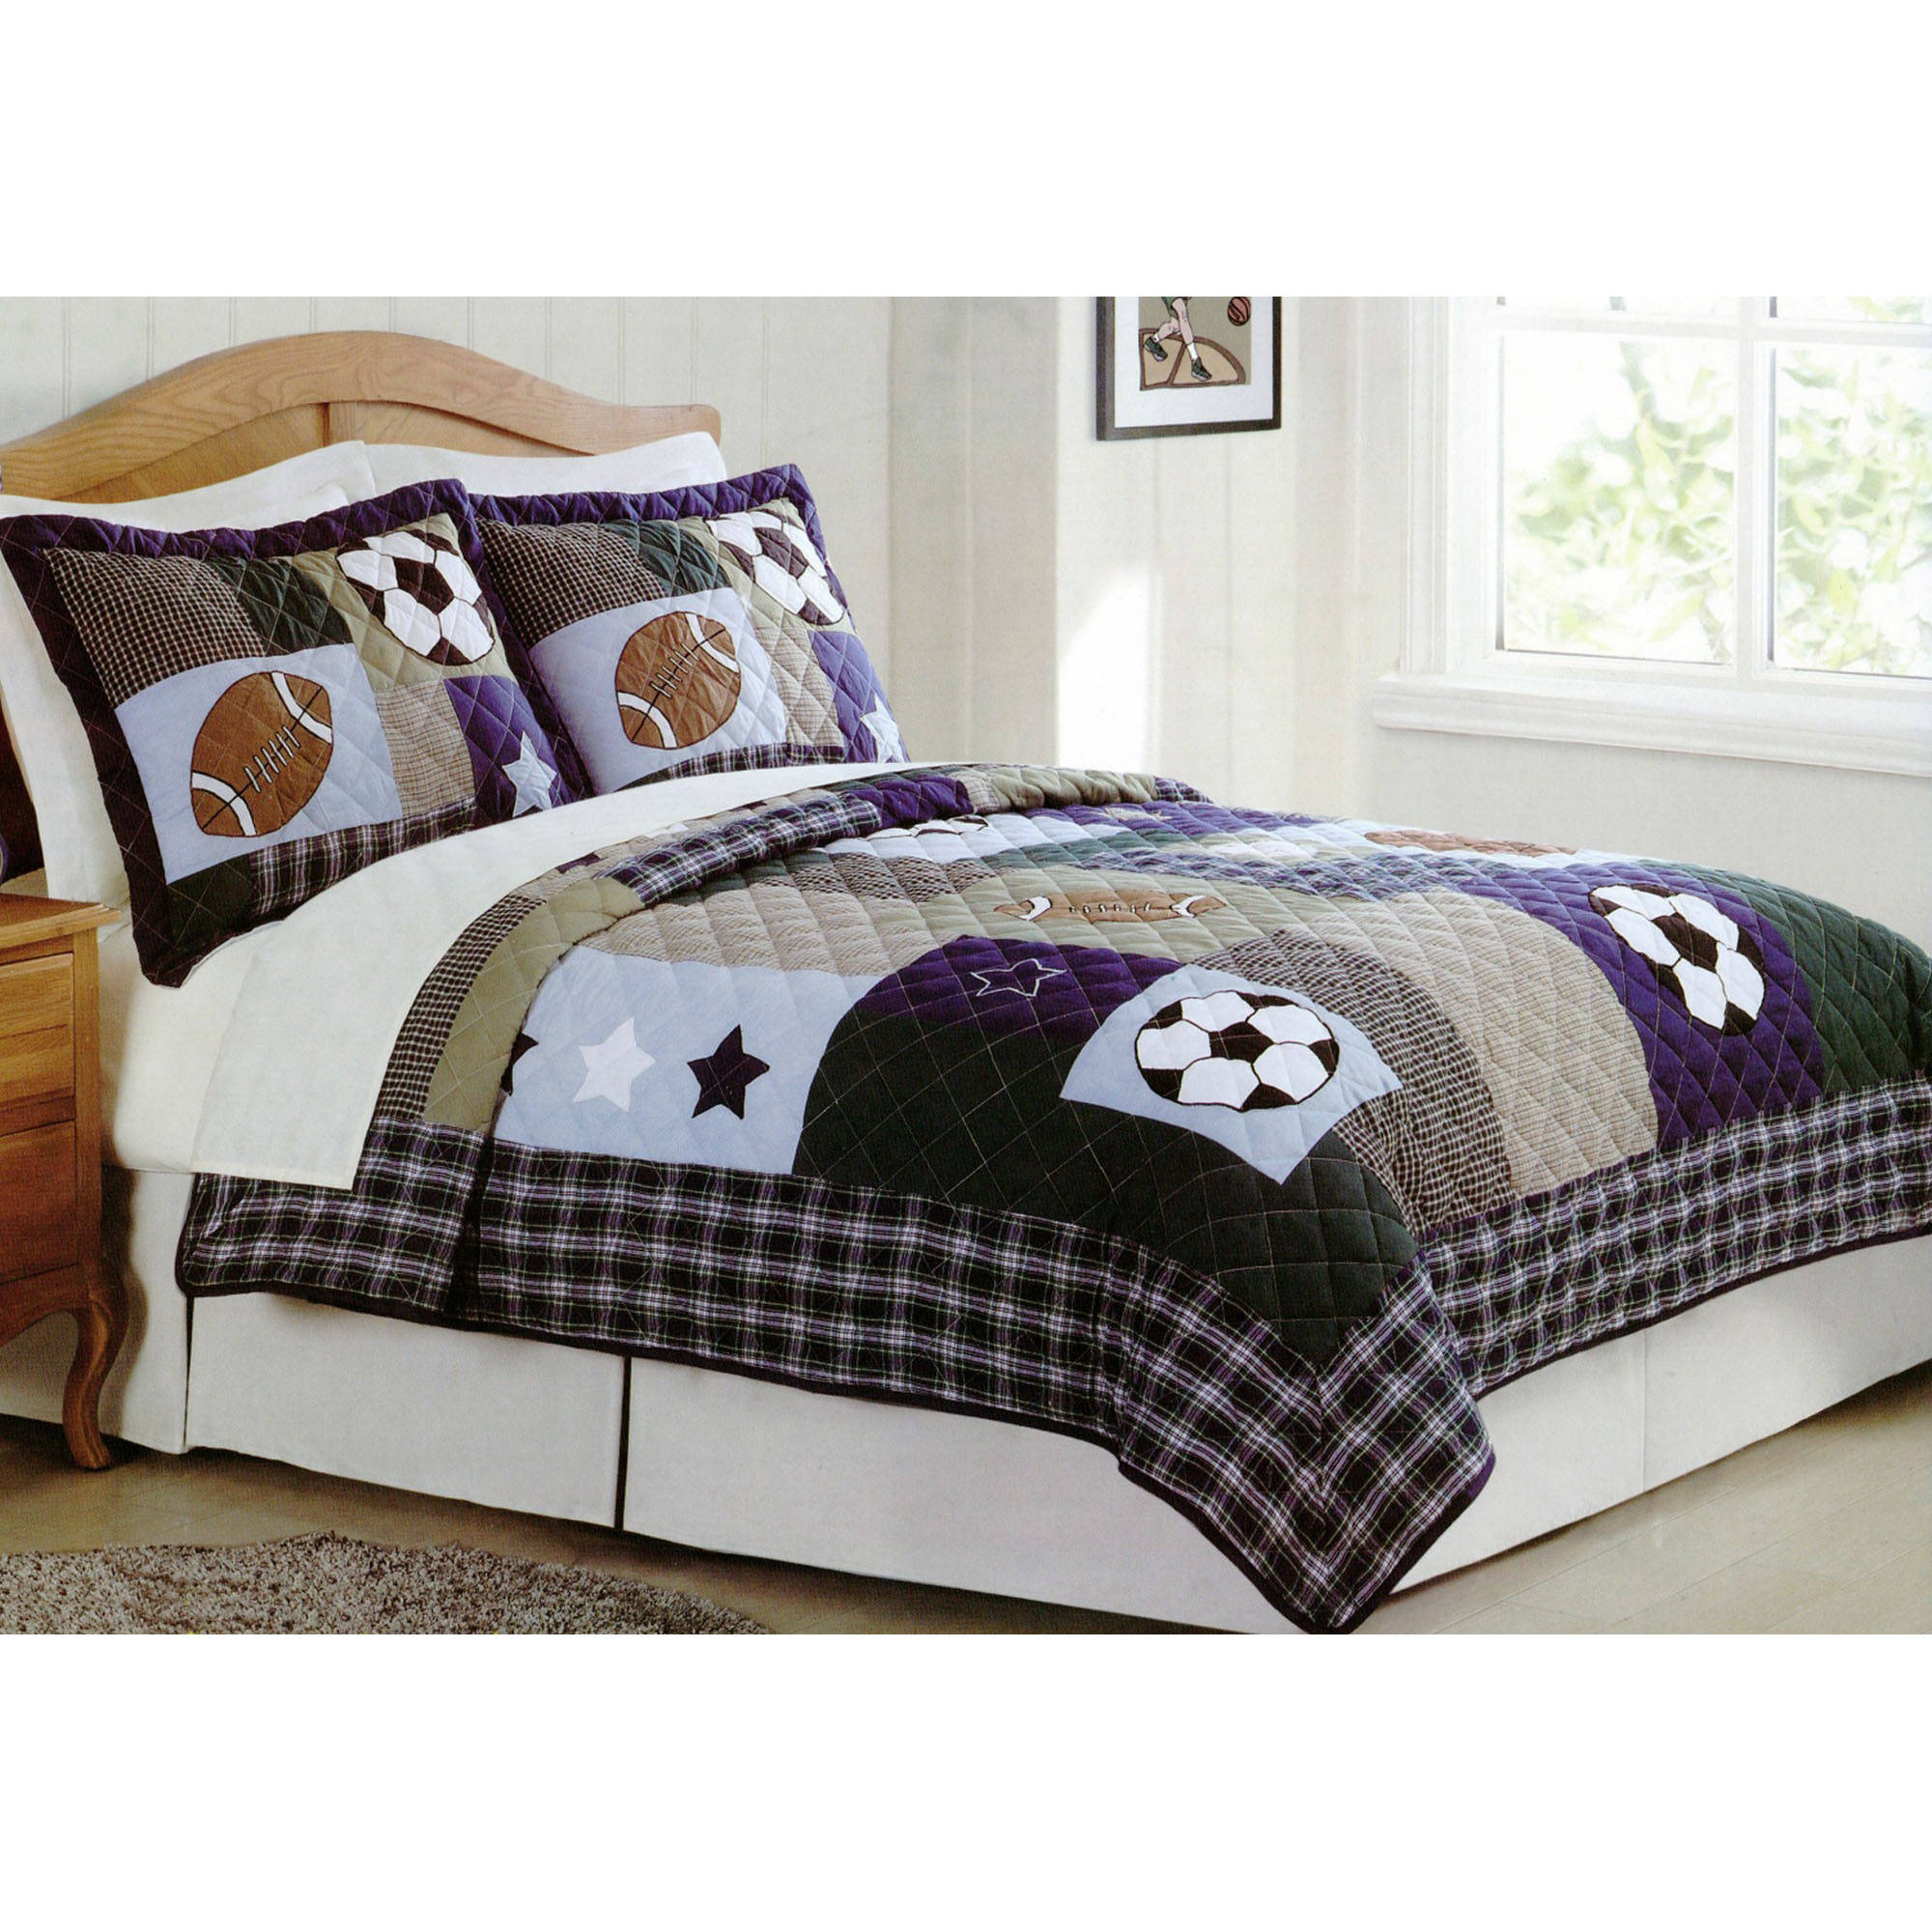 for sports tags beautiful teen bed images queeneboyse tag boysteen set boys clearance size inspirations theme sets of full bedding stirring queen little